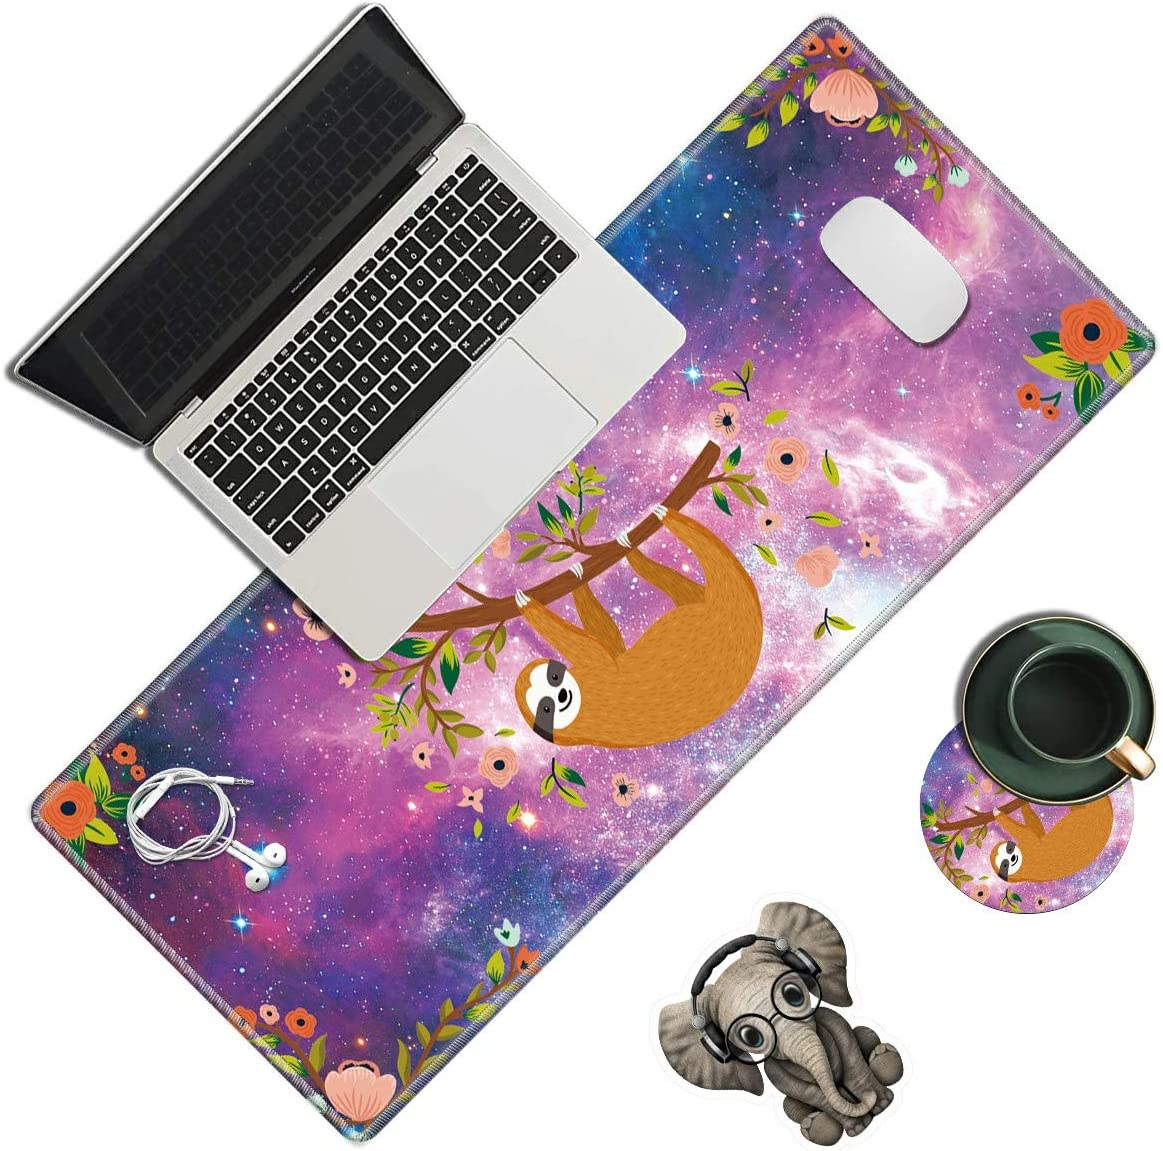 Desk Pad, Cute Sloth Laptop Desk Mat,Long Large Gaming Mouse Pad with Stitched Edges Non-Slip Writing Mat Desk Blotter Protector for Office Home (with Coaster & Elephant Sticker)